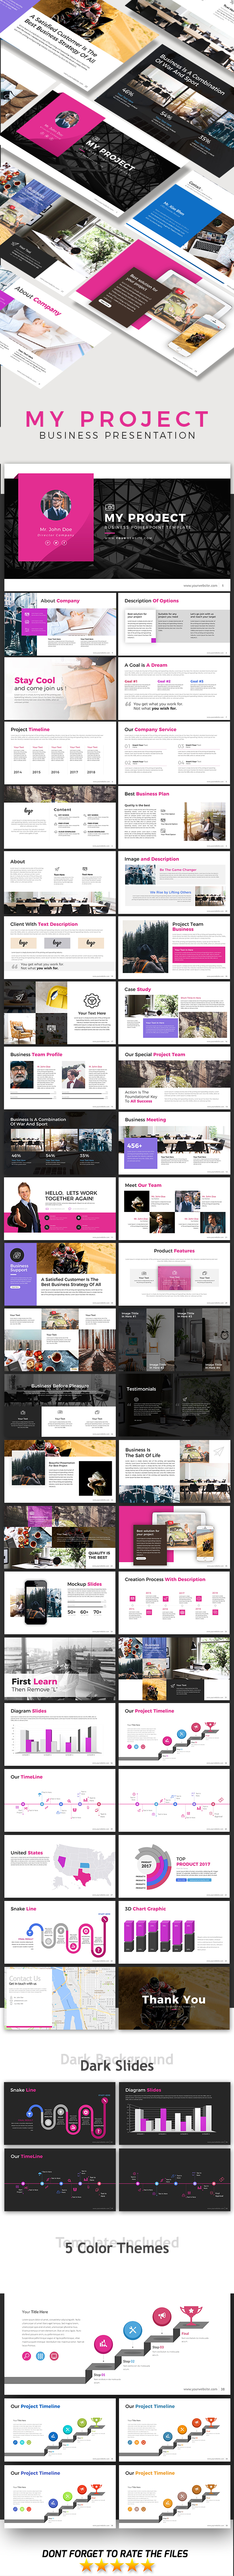 My Project - Business Presentation - Business PowerPoint Templates